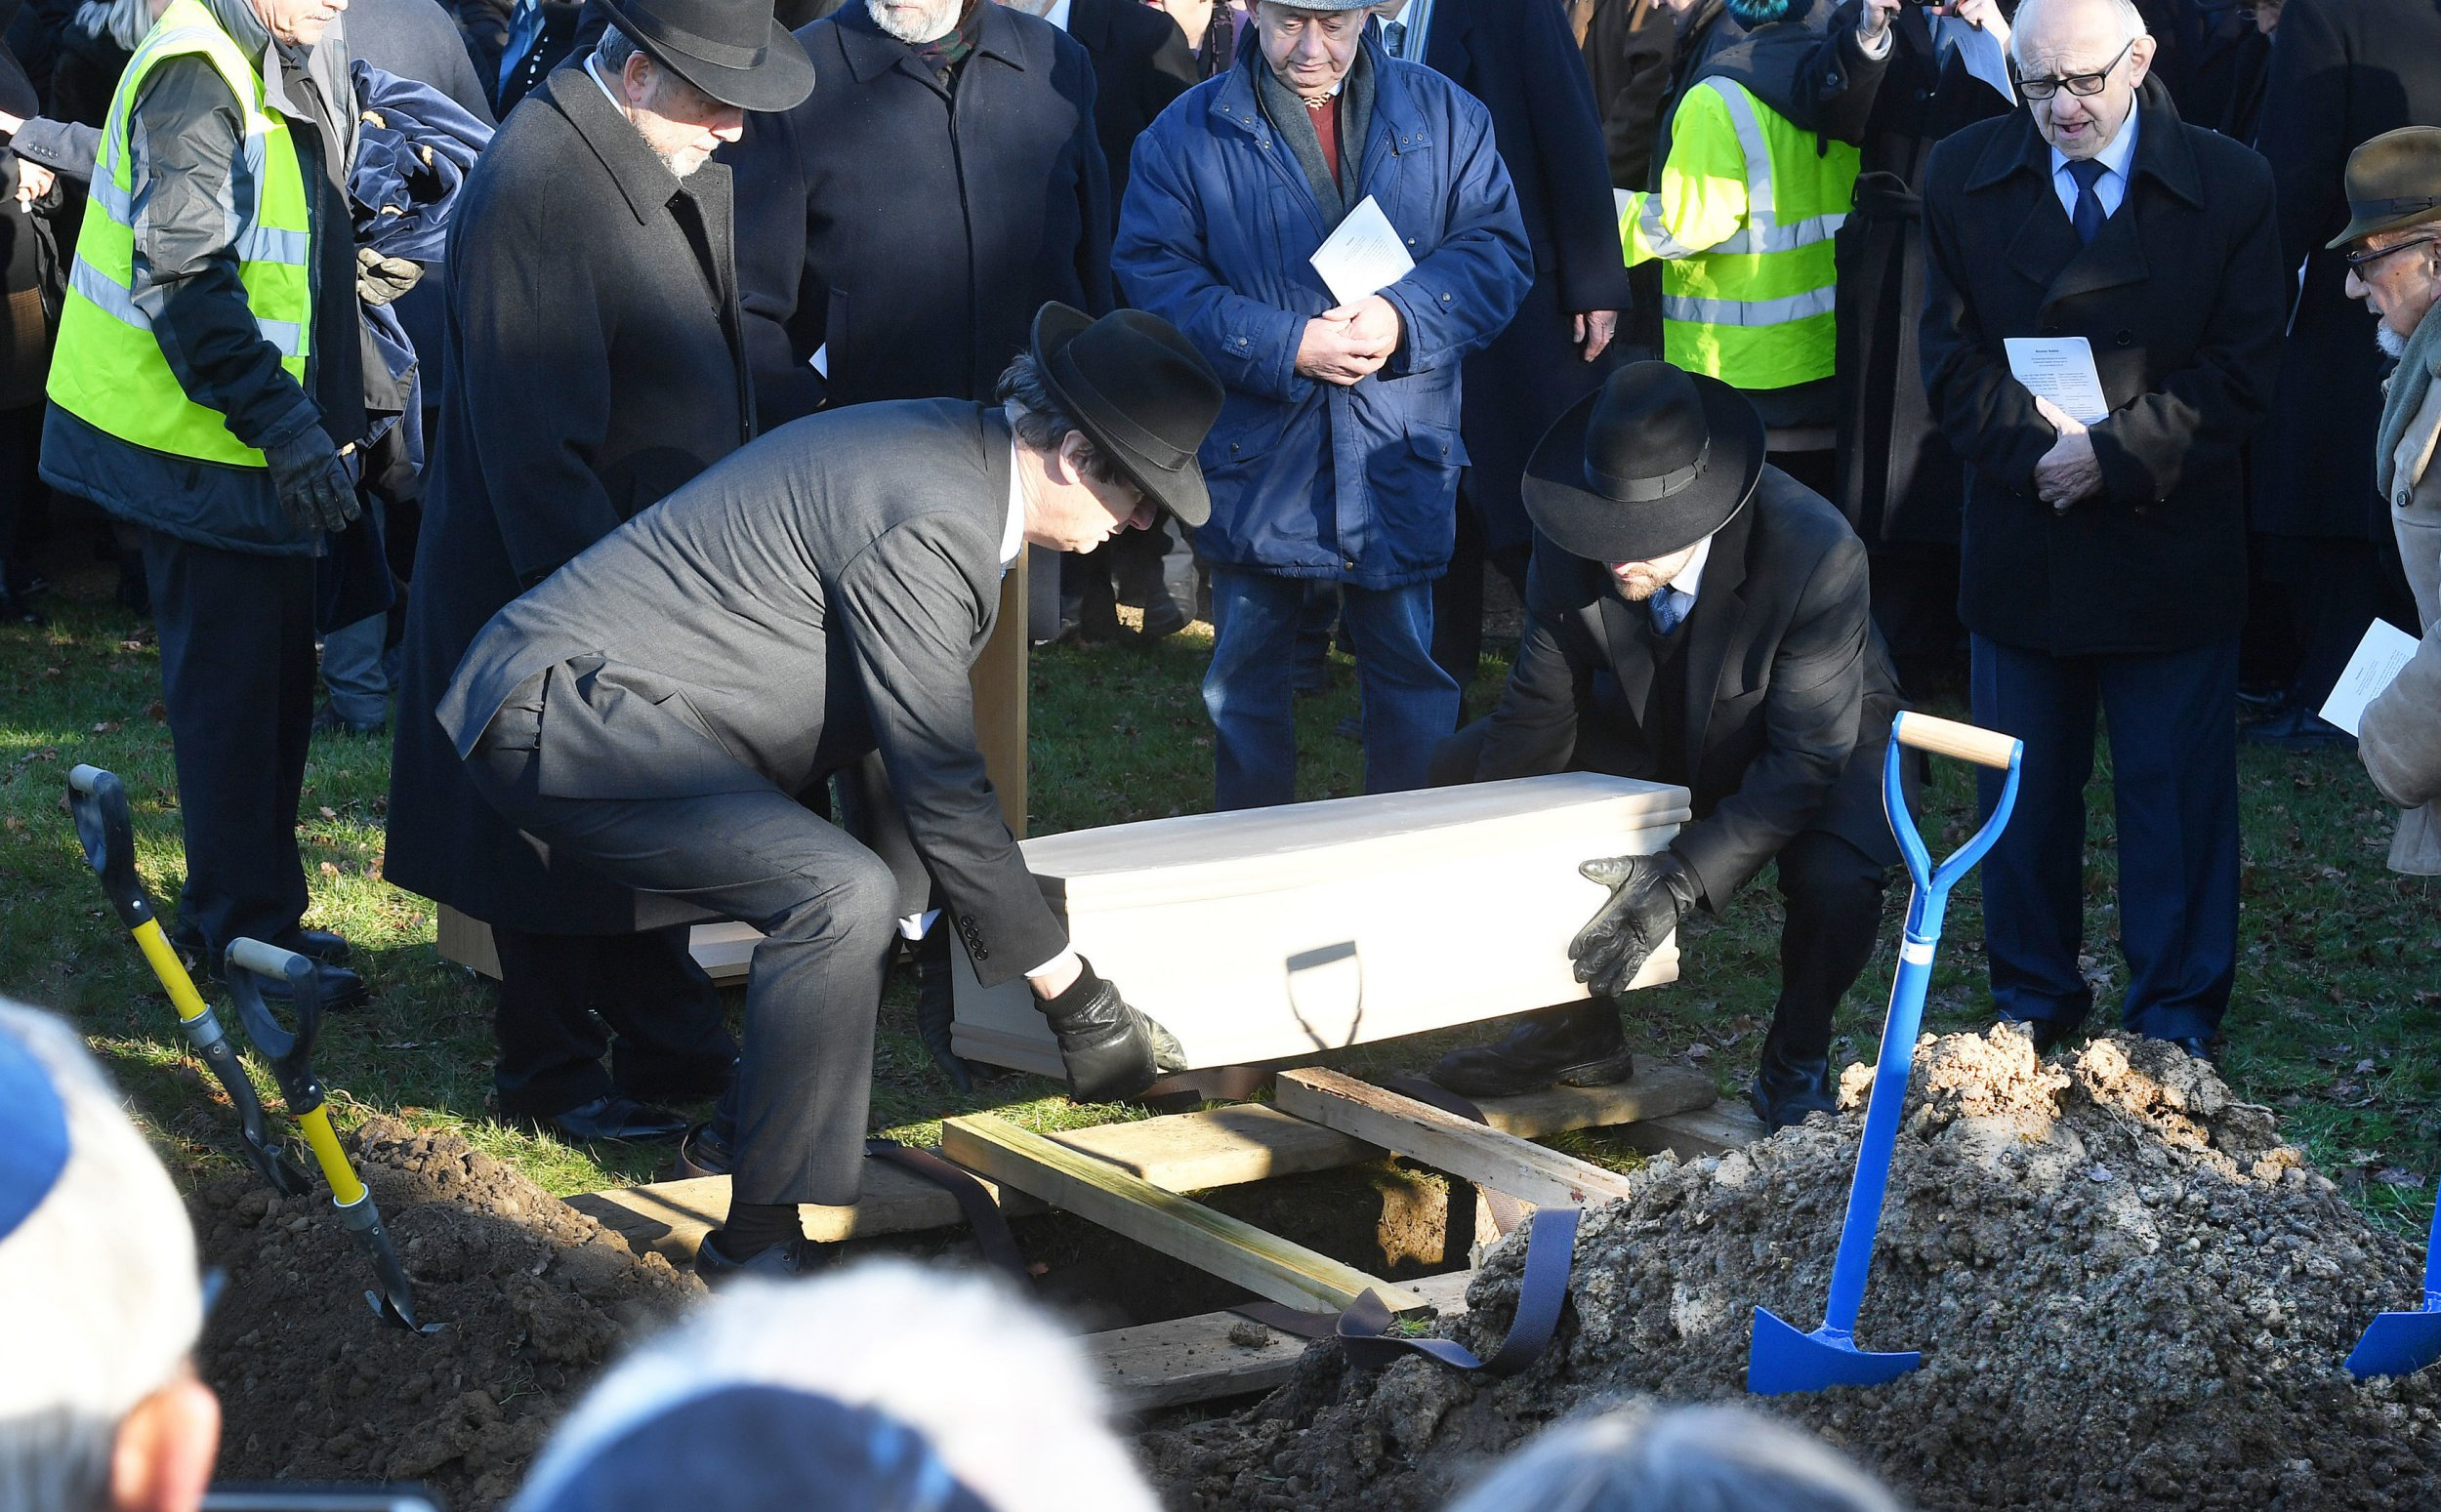 A coffin with the remains of six unknown Jews murdered at Auschwitz, is buried at the United Synagogue's New Cemetery in Bushey, Hertfordshire , after being in the Imperial War Museum for decades. PRESS ASSOCIATION Photo. Picture date: Sunday January 20, 2019. The remains of five adults and a child will be laid to rest after decades in the Imperial War Museum's archives. After a stocktaking of its Holocaust material last year, the museum decided that the ash remains should be returned to the Jewish community. See PA story FUNERAL Holocaust. Photo credit should read: John Stillwell/PA Wire